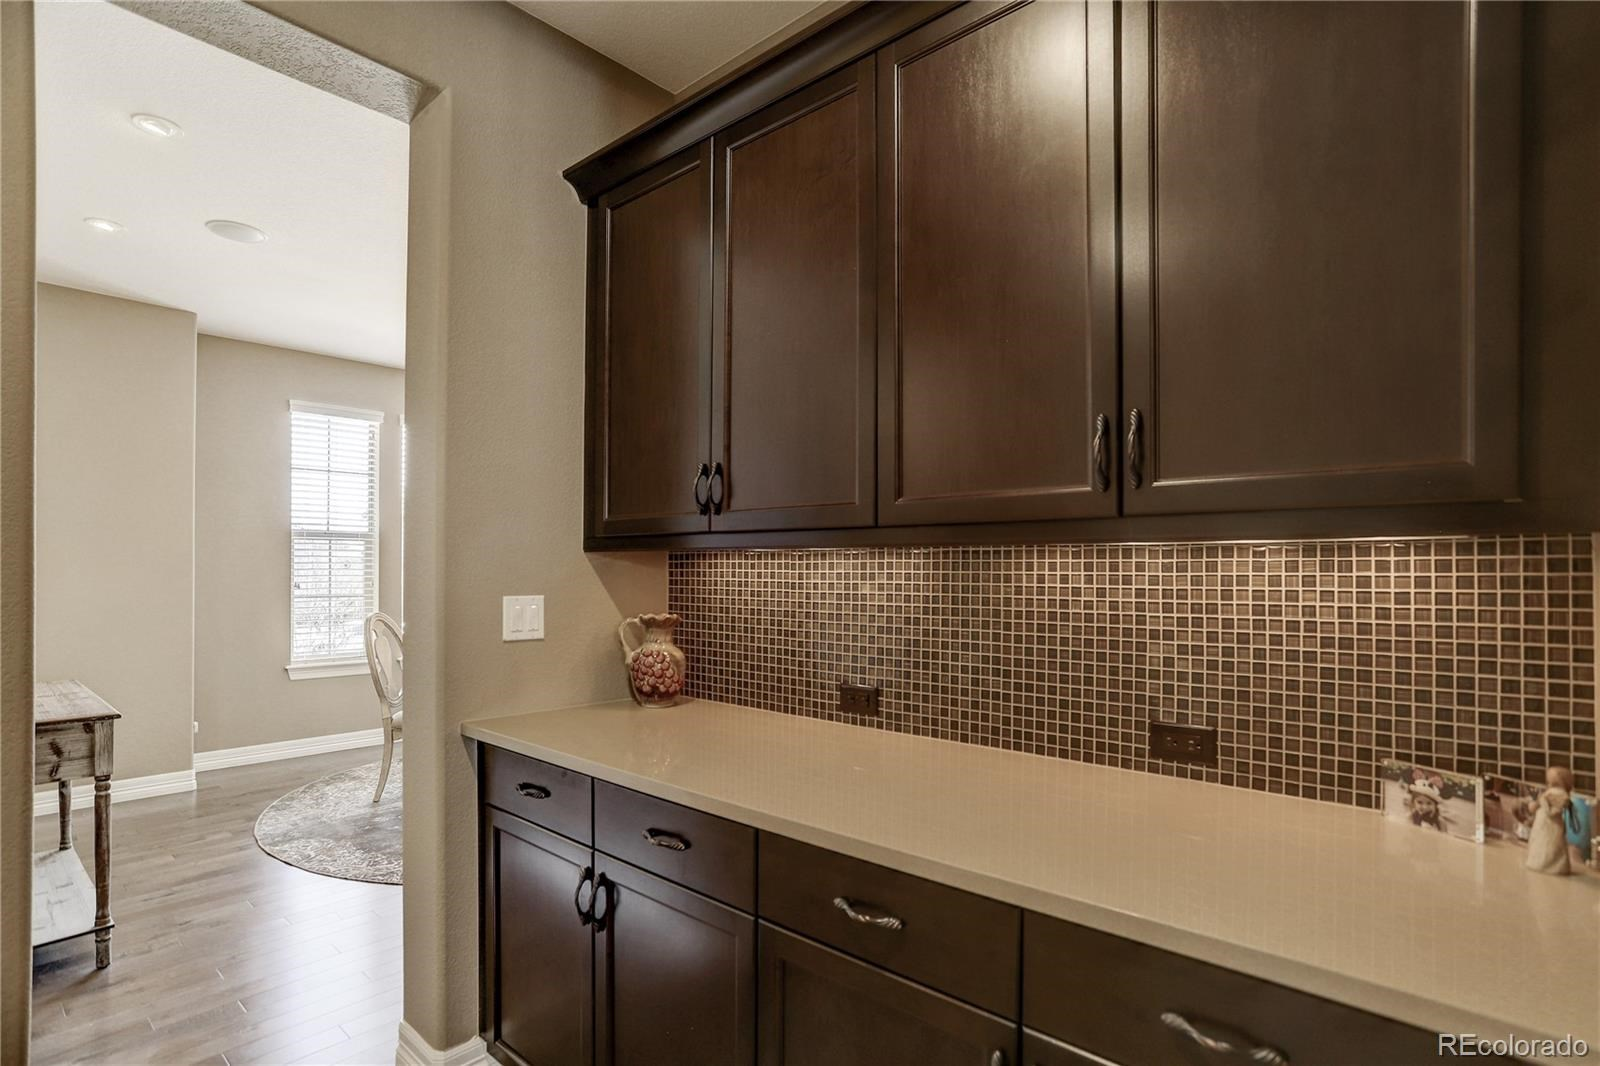 MLS# 8360577 - 15 - 2247 S Isabell Court, Lakewood, CO 80228